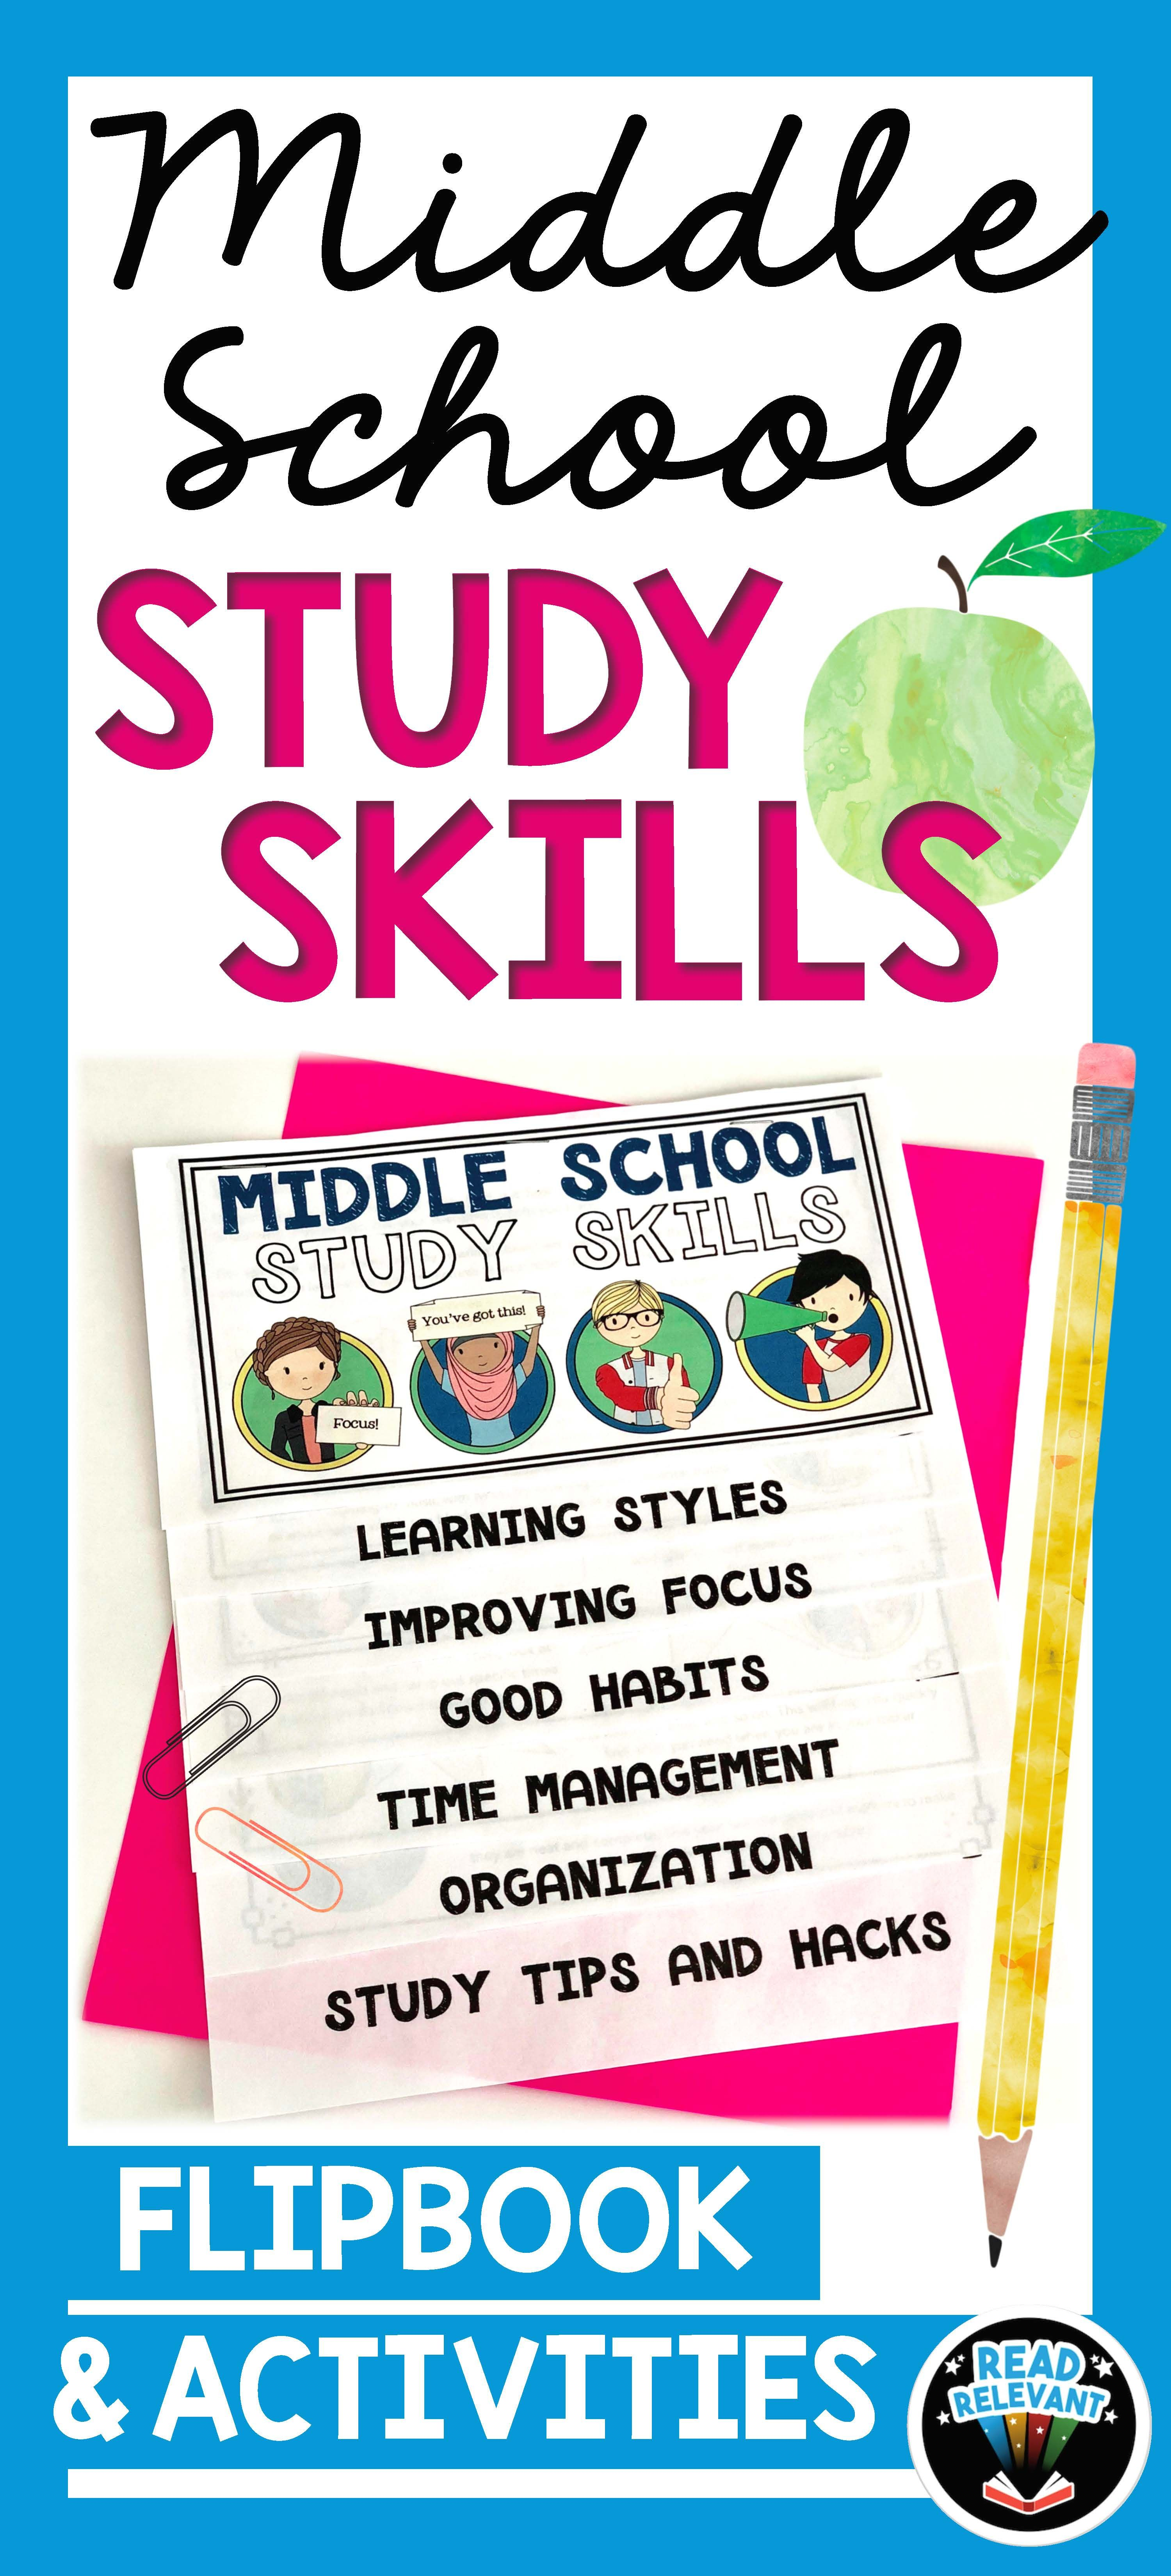 Study Skills For Middle School Flipbook And Activities